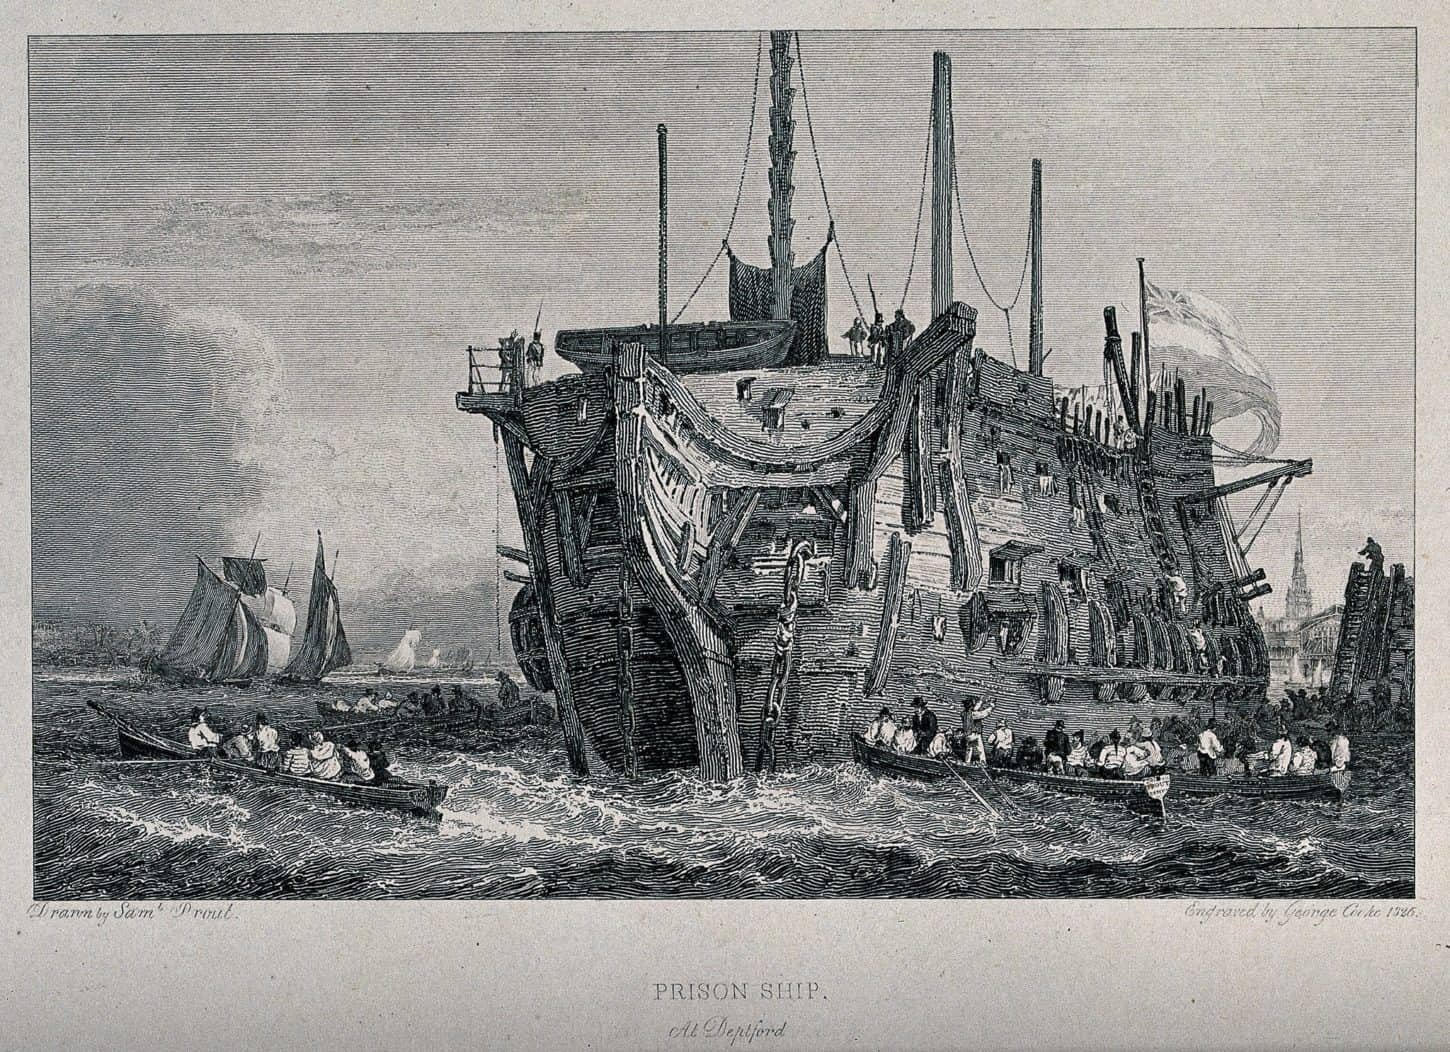 A small rowing boat is taking people to a prison ship. Engraving by George Cooke after Samuel Prout.. Credit: Wellcome Collection.